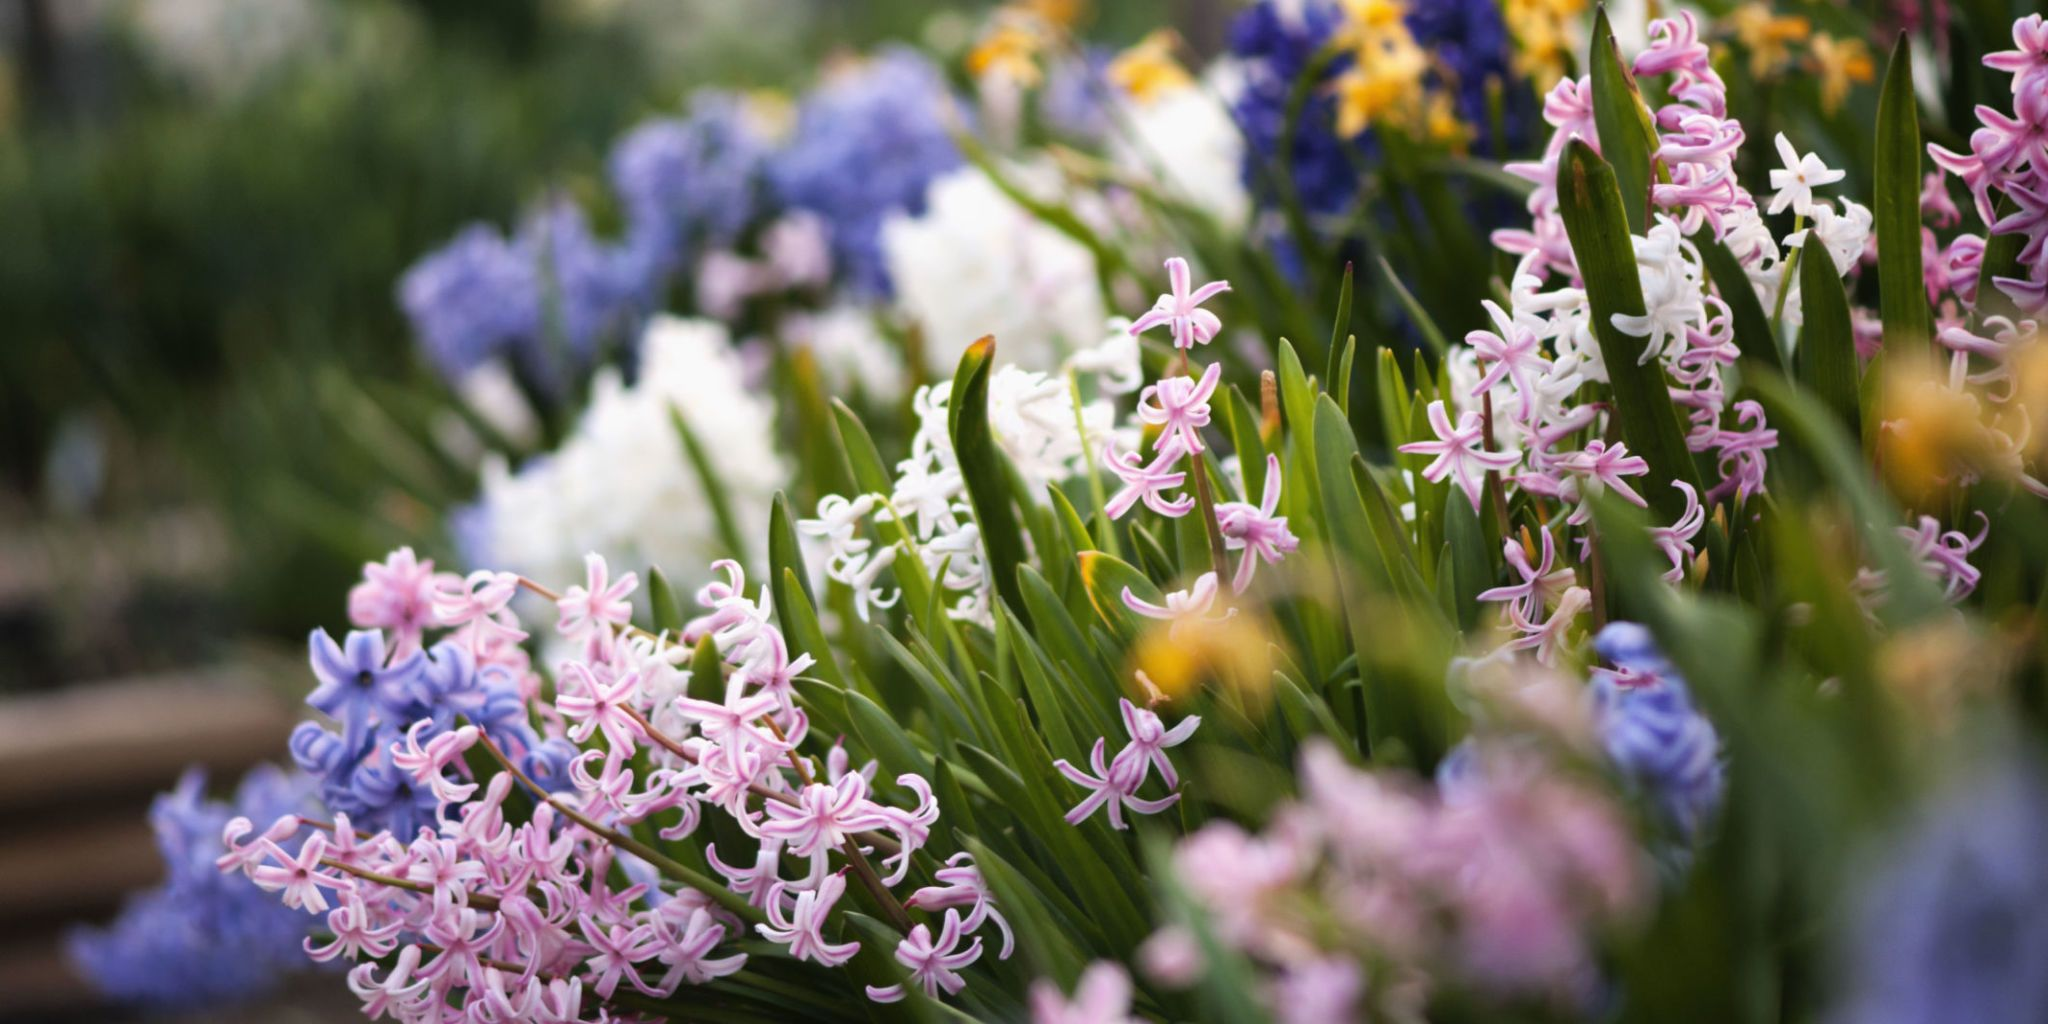 50 Flowers The Most Beautiful Gardens Have In Common